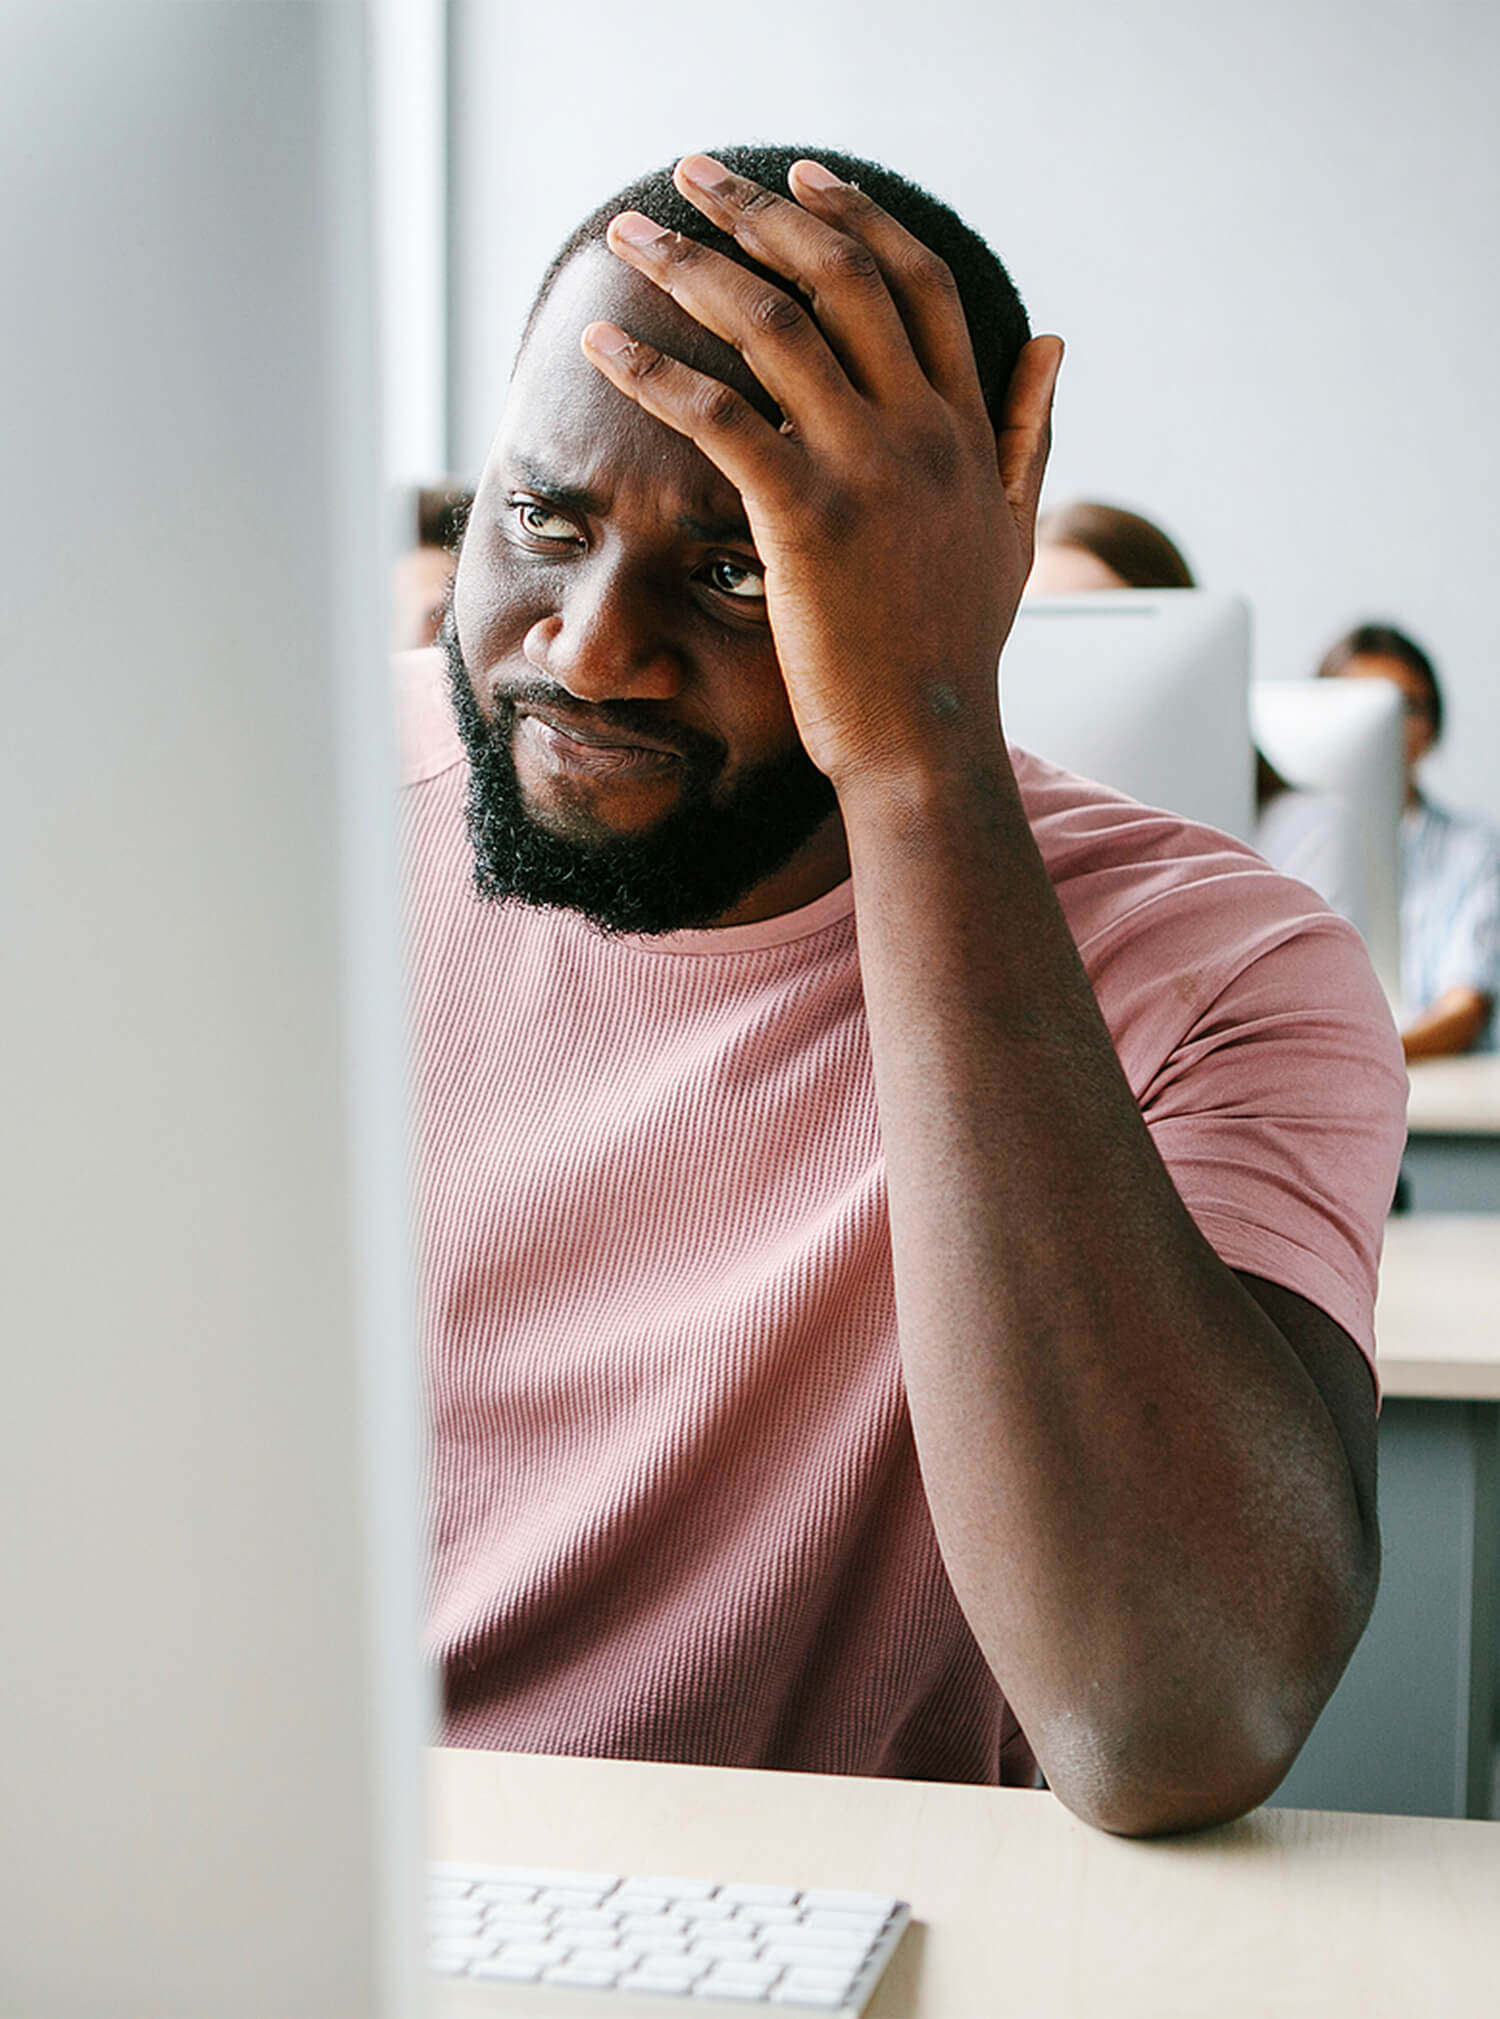 Black man in pink shirt holding head in distress. When you're looking for guidance with stress, stress therapy in Riverside, Il, Chicago, and Lyons today. Begin stress management therapy and be to recover.